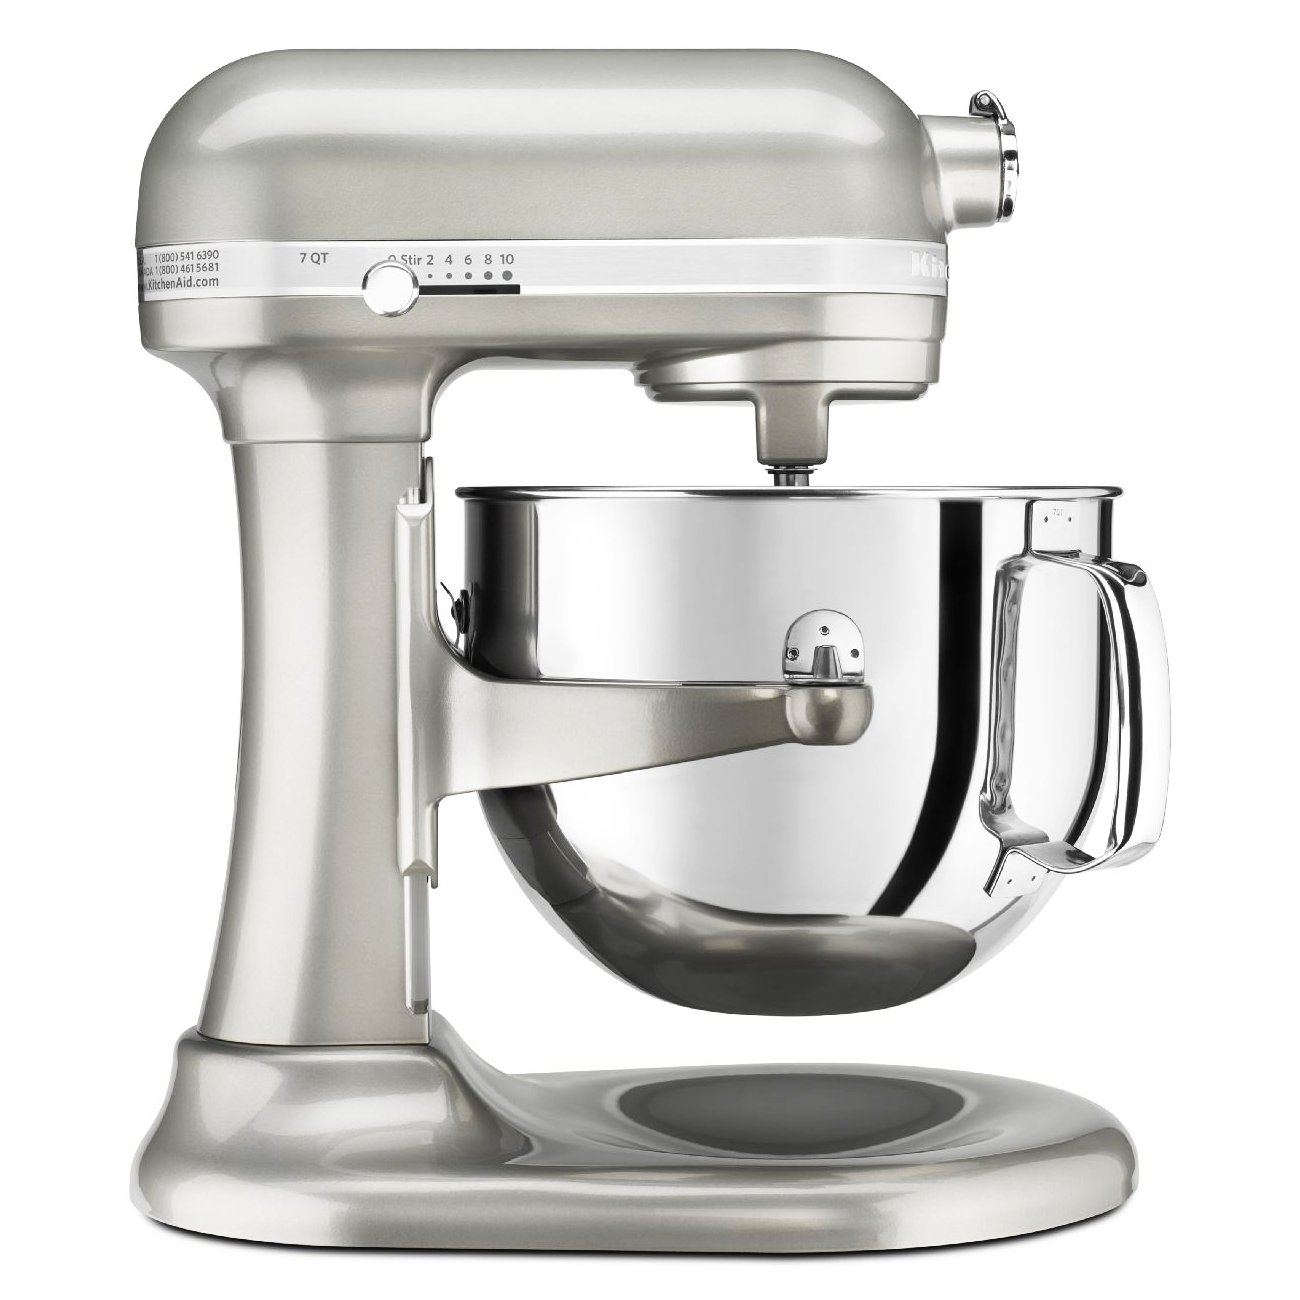 kitchenaid 7 qt proline mixer. amazon.com: kitchenaid ksm7586psr 7-quart pro line stand mixer sugar pearl silver: electric mixers: kitchen \u0026 dining kitchenaid 7 qt proline